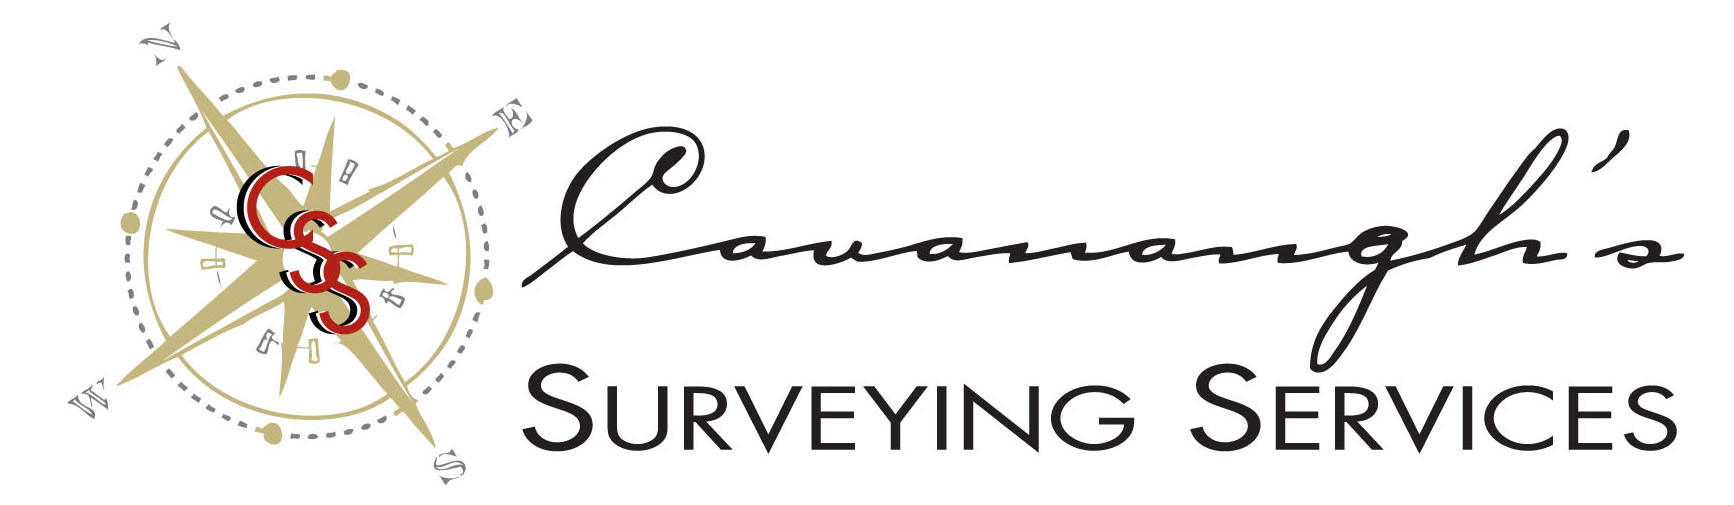 Cavanaugh's Surveying Services LLC